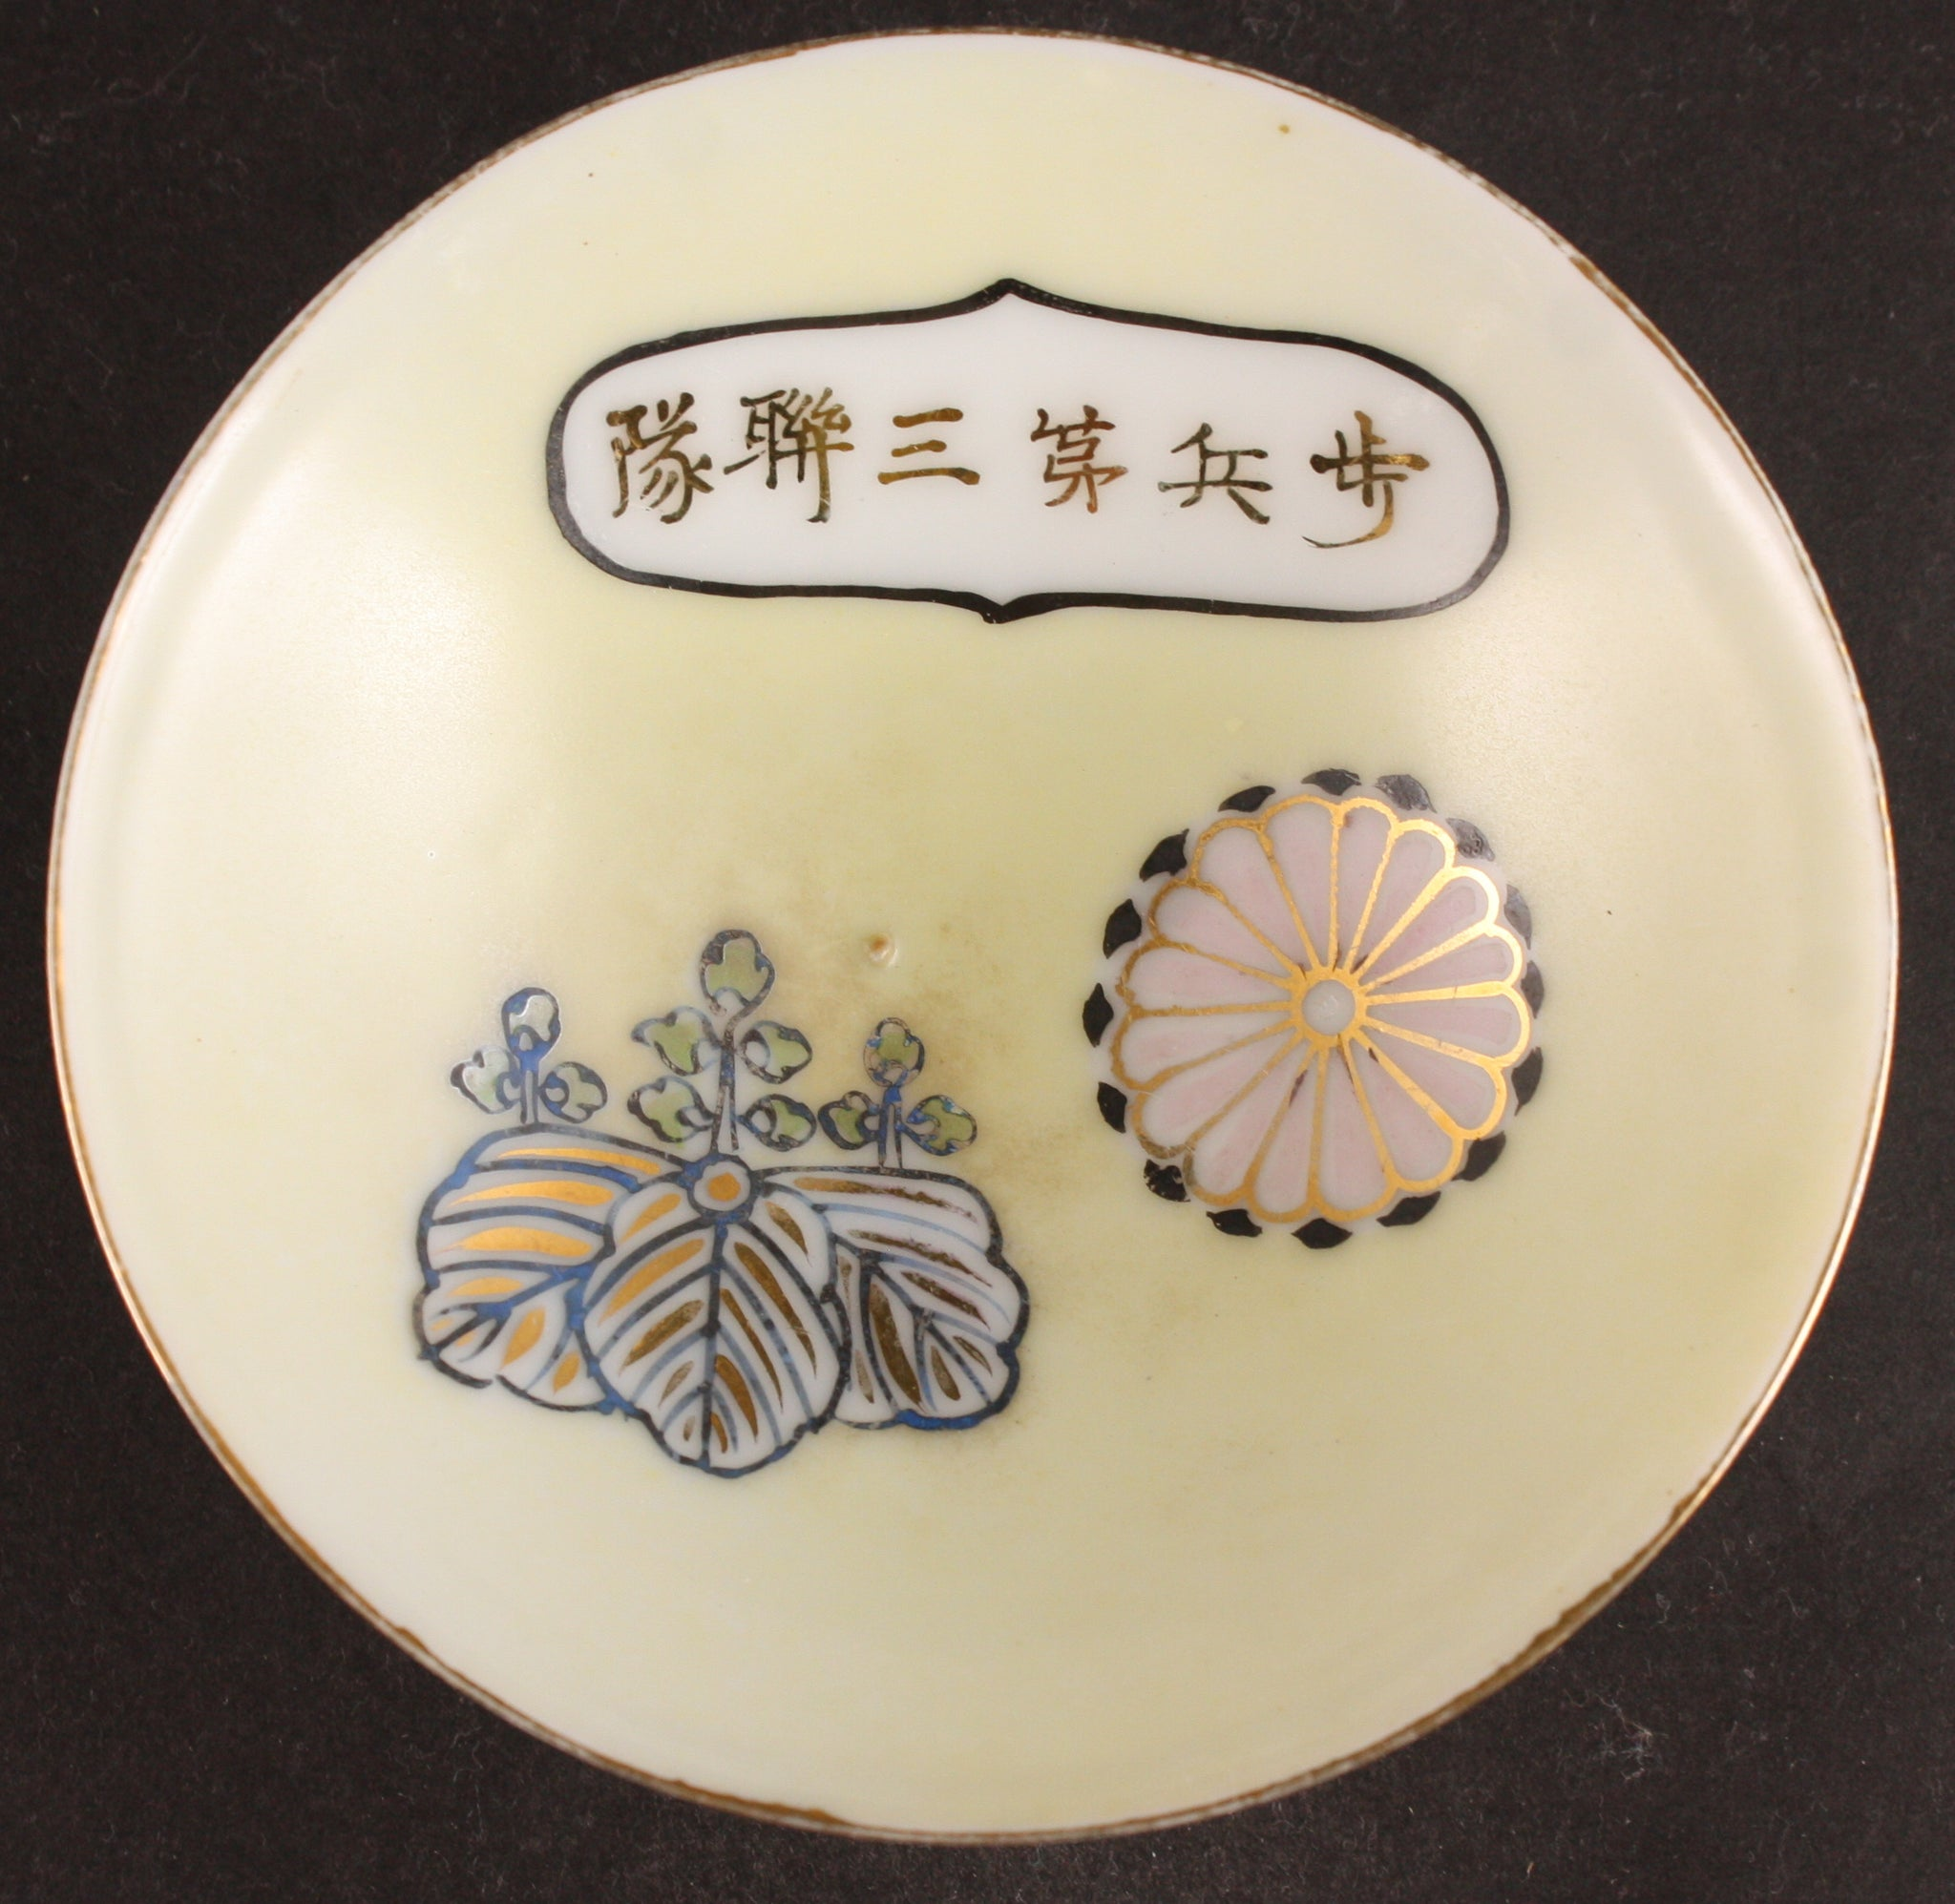 Antiique Japanese Military Infantry Kiri Chrysanthemum Army Sake Cup